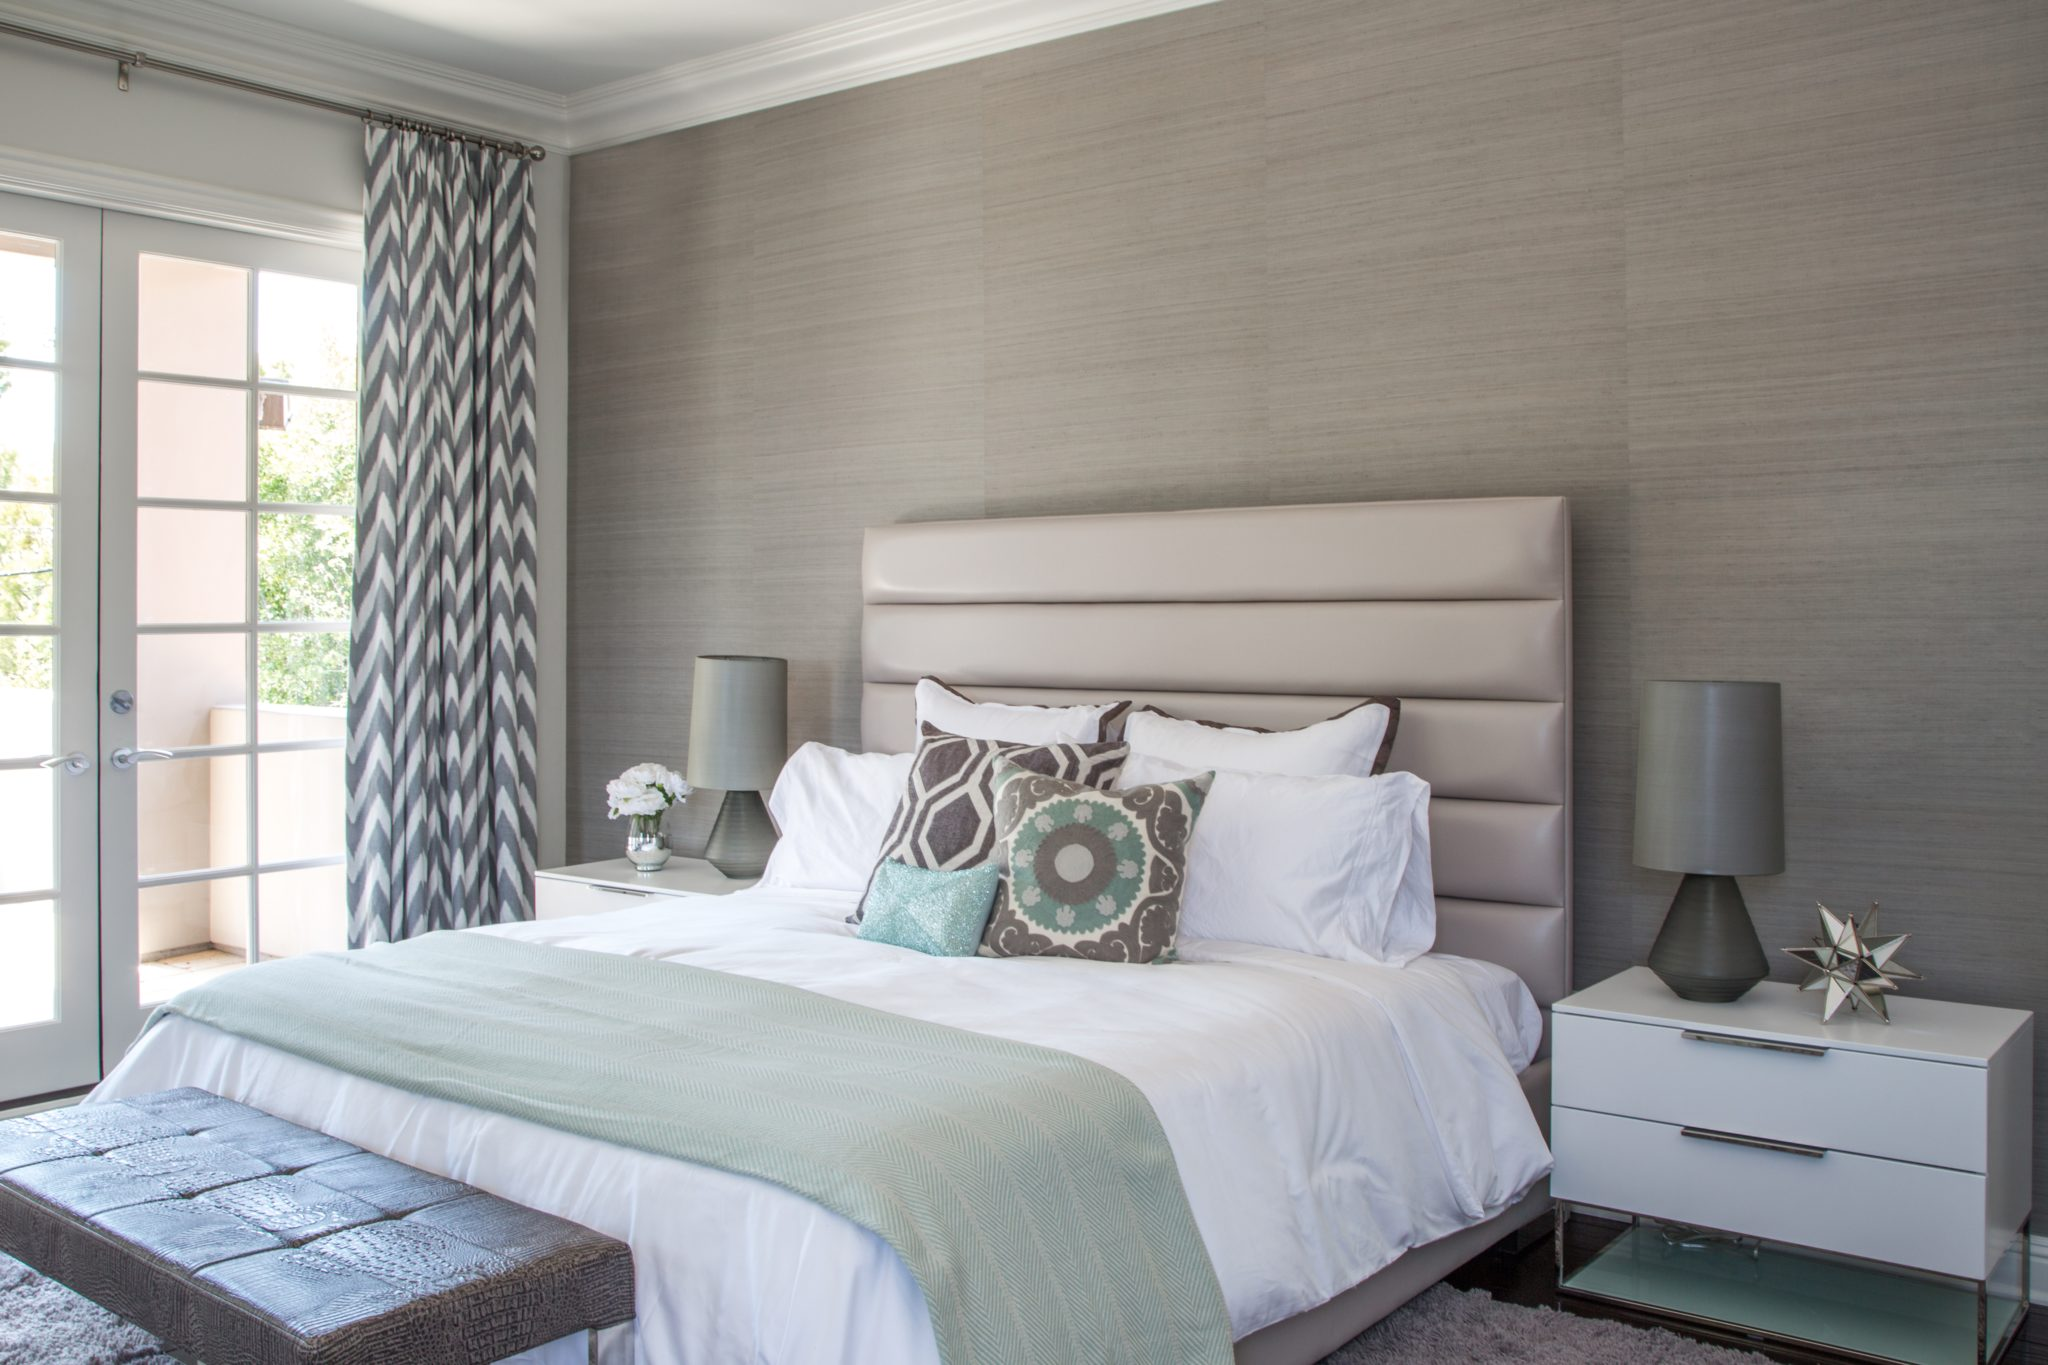 33 examples of decorating with hightexture wall coverings